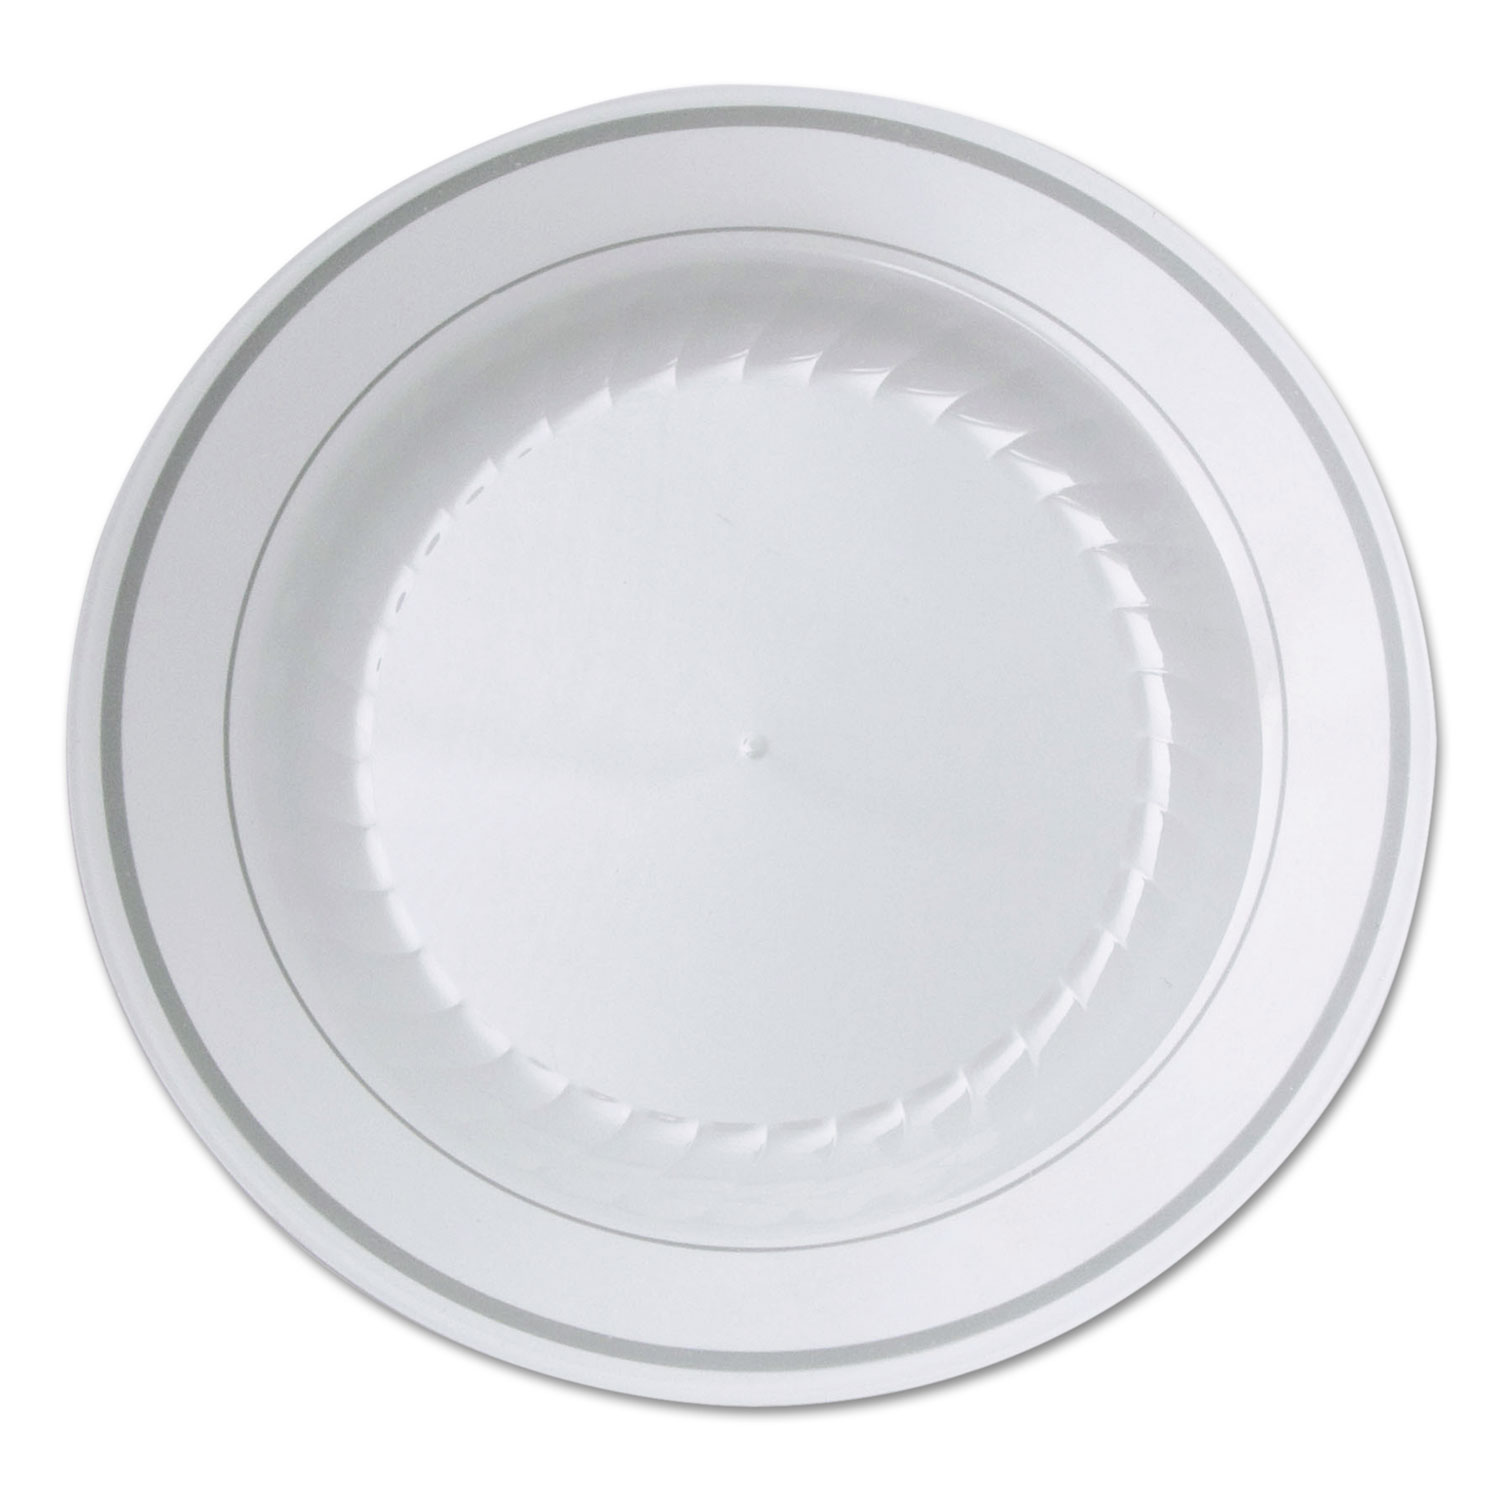 Masterpiece Plastic Plates 6 In White W Silver Accents Round